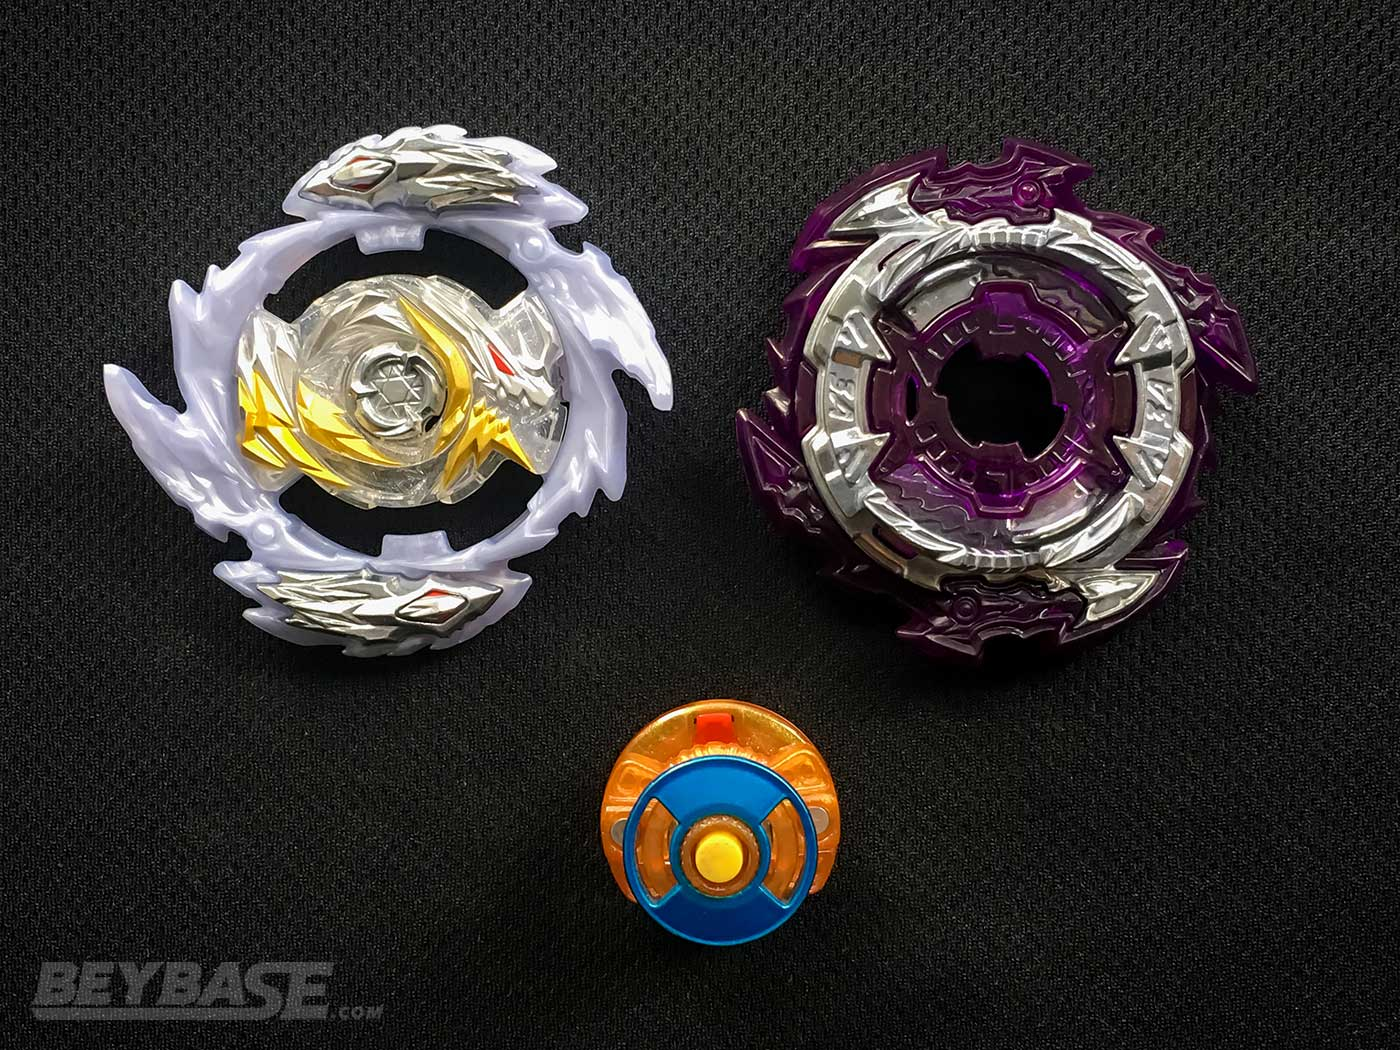 rage longinus xceed'+z 3a top tier beyblade burst attack combination